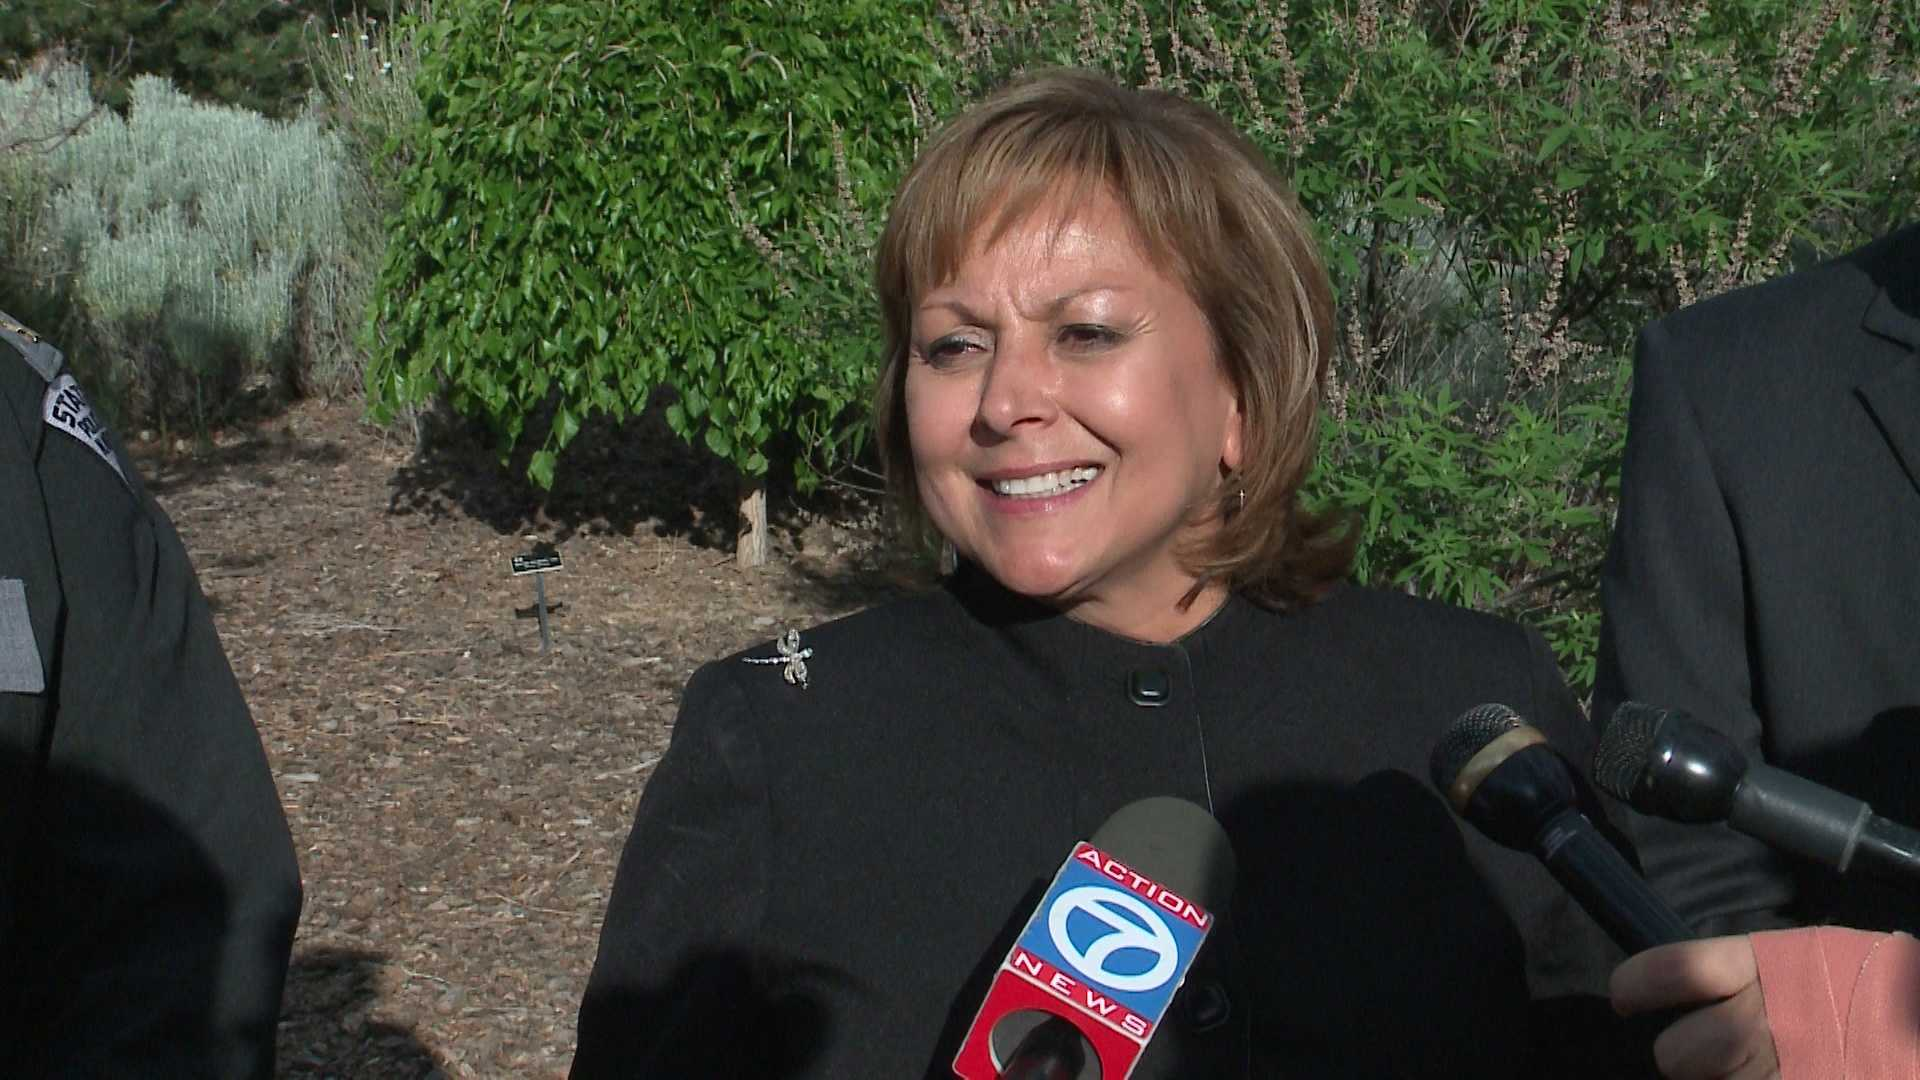 Gov. Martinez says she's not bothered by Trump's insults